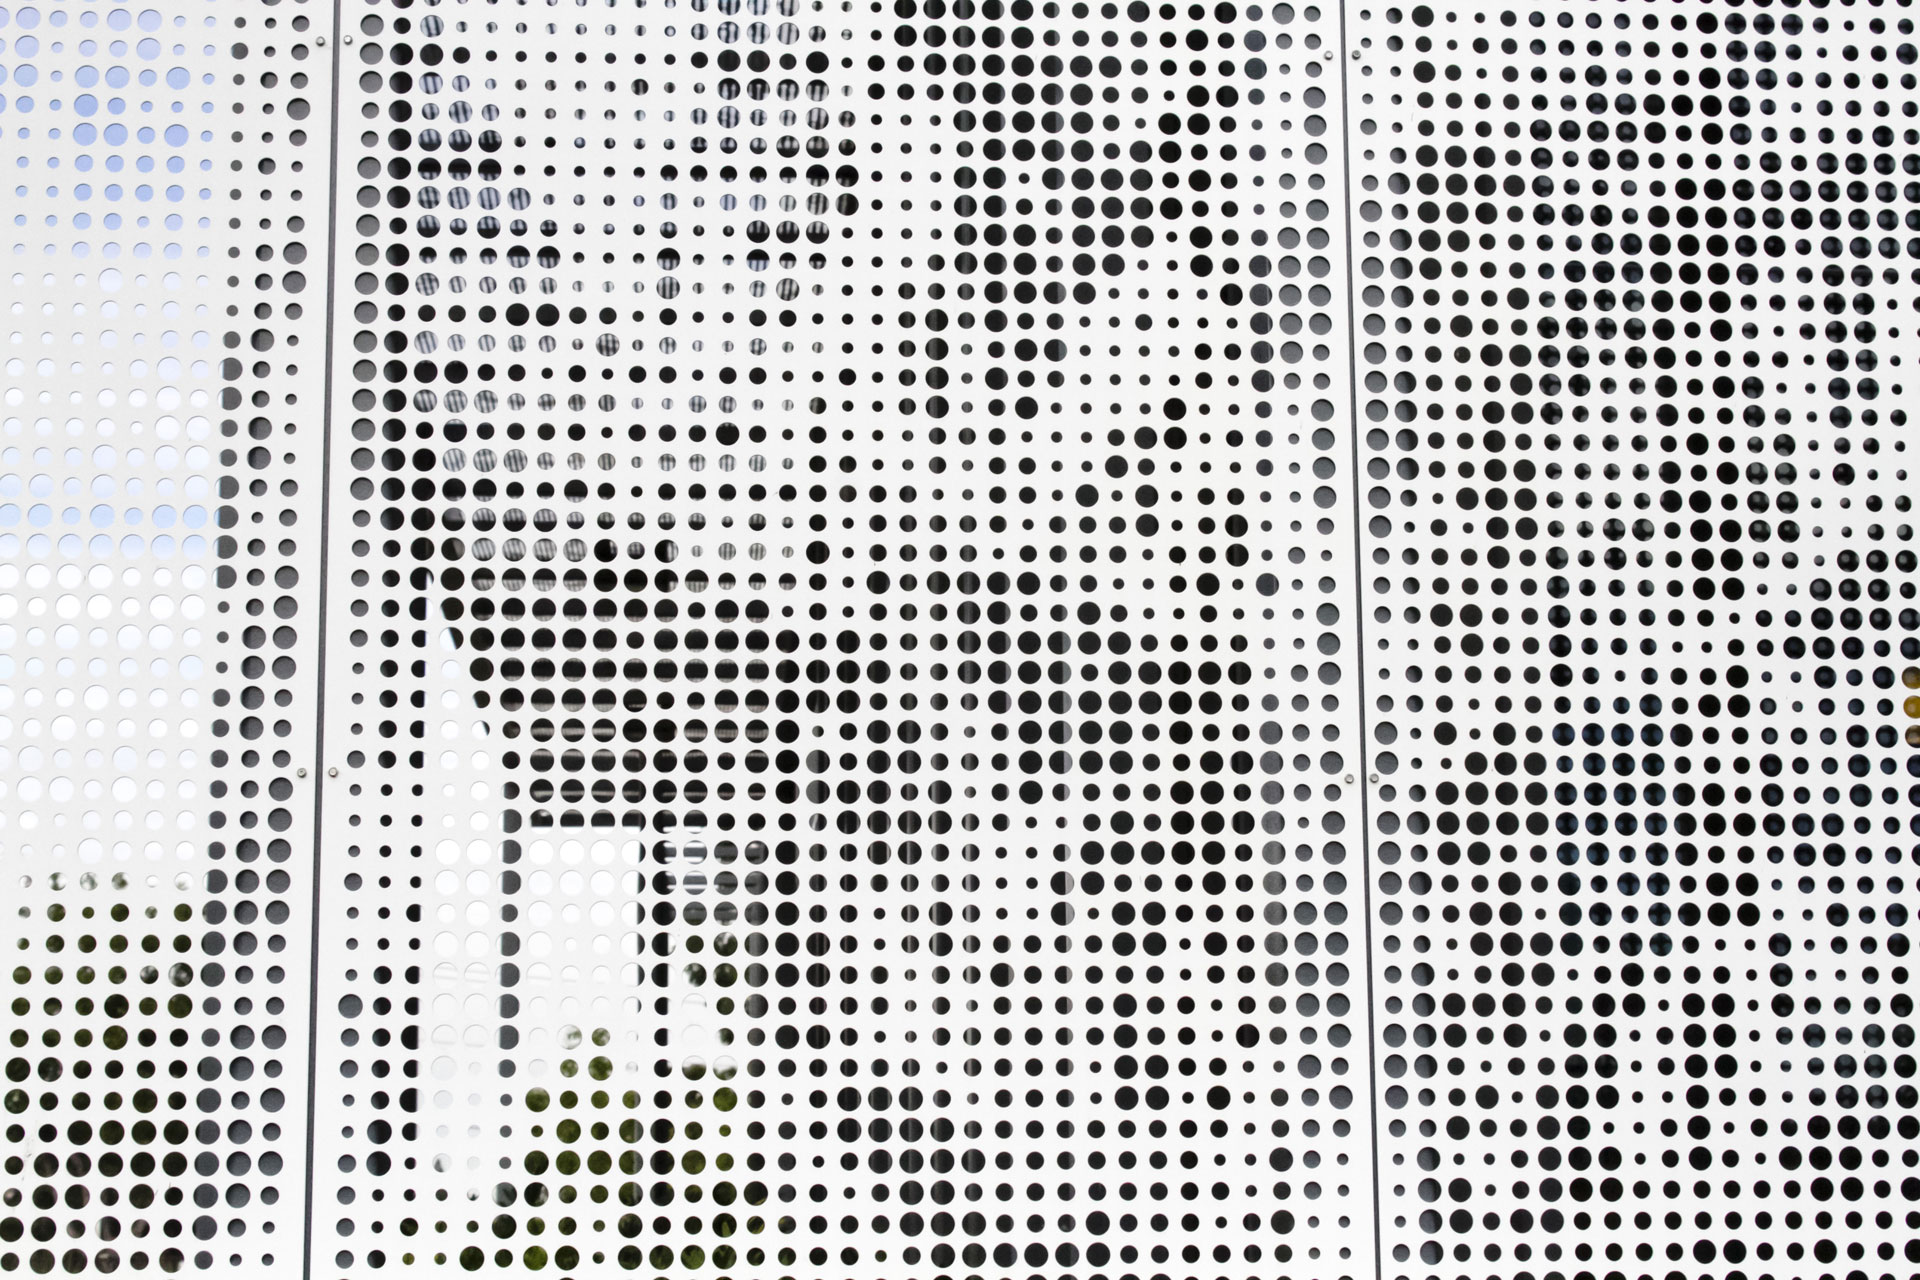 architectural perforated